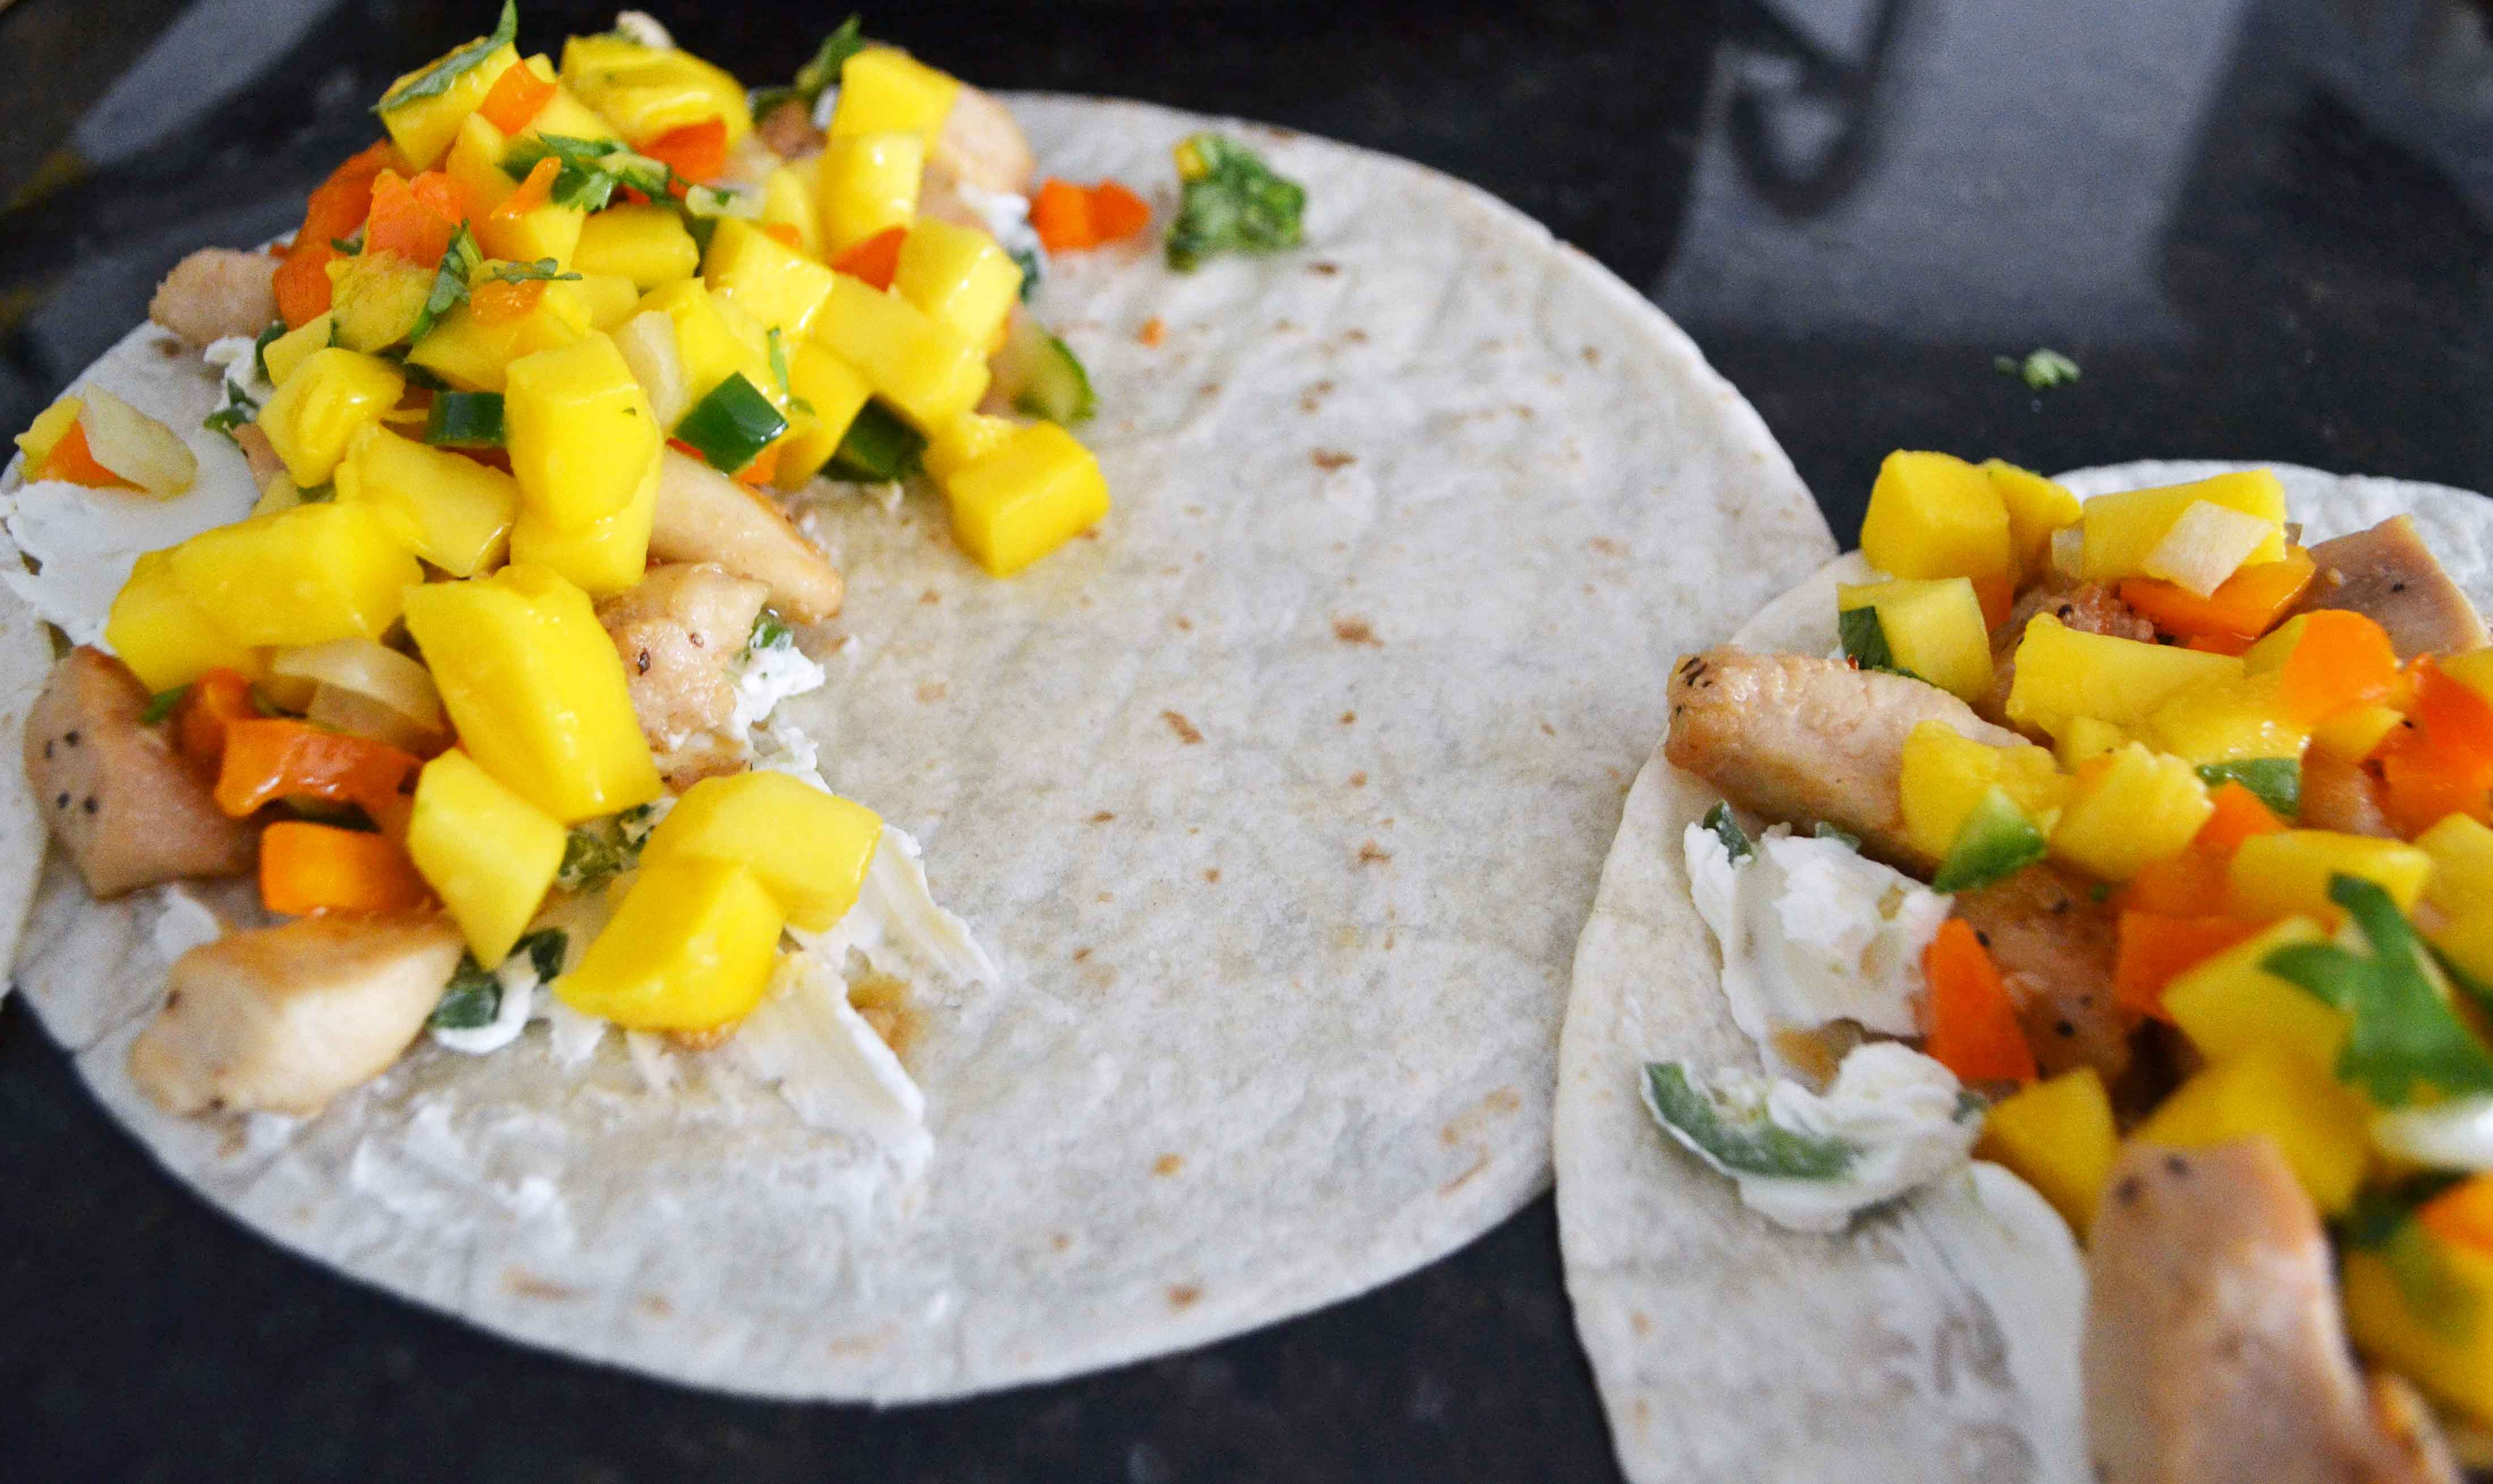 Chicken Mango Quesadillas made with honey lime chicken, homemade fresh mango salsa, pepper jack cheese, and an optional jalapeno cream cheese all melted inside a buttery tortilla. A popular Mexican dinner made in less than 30 minutes. www.modernhoney.com